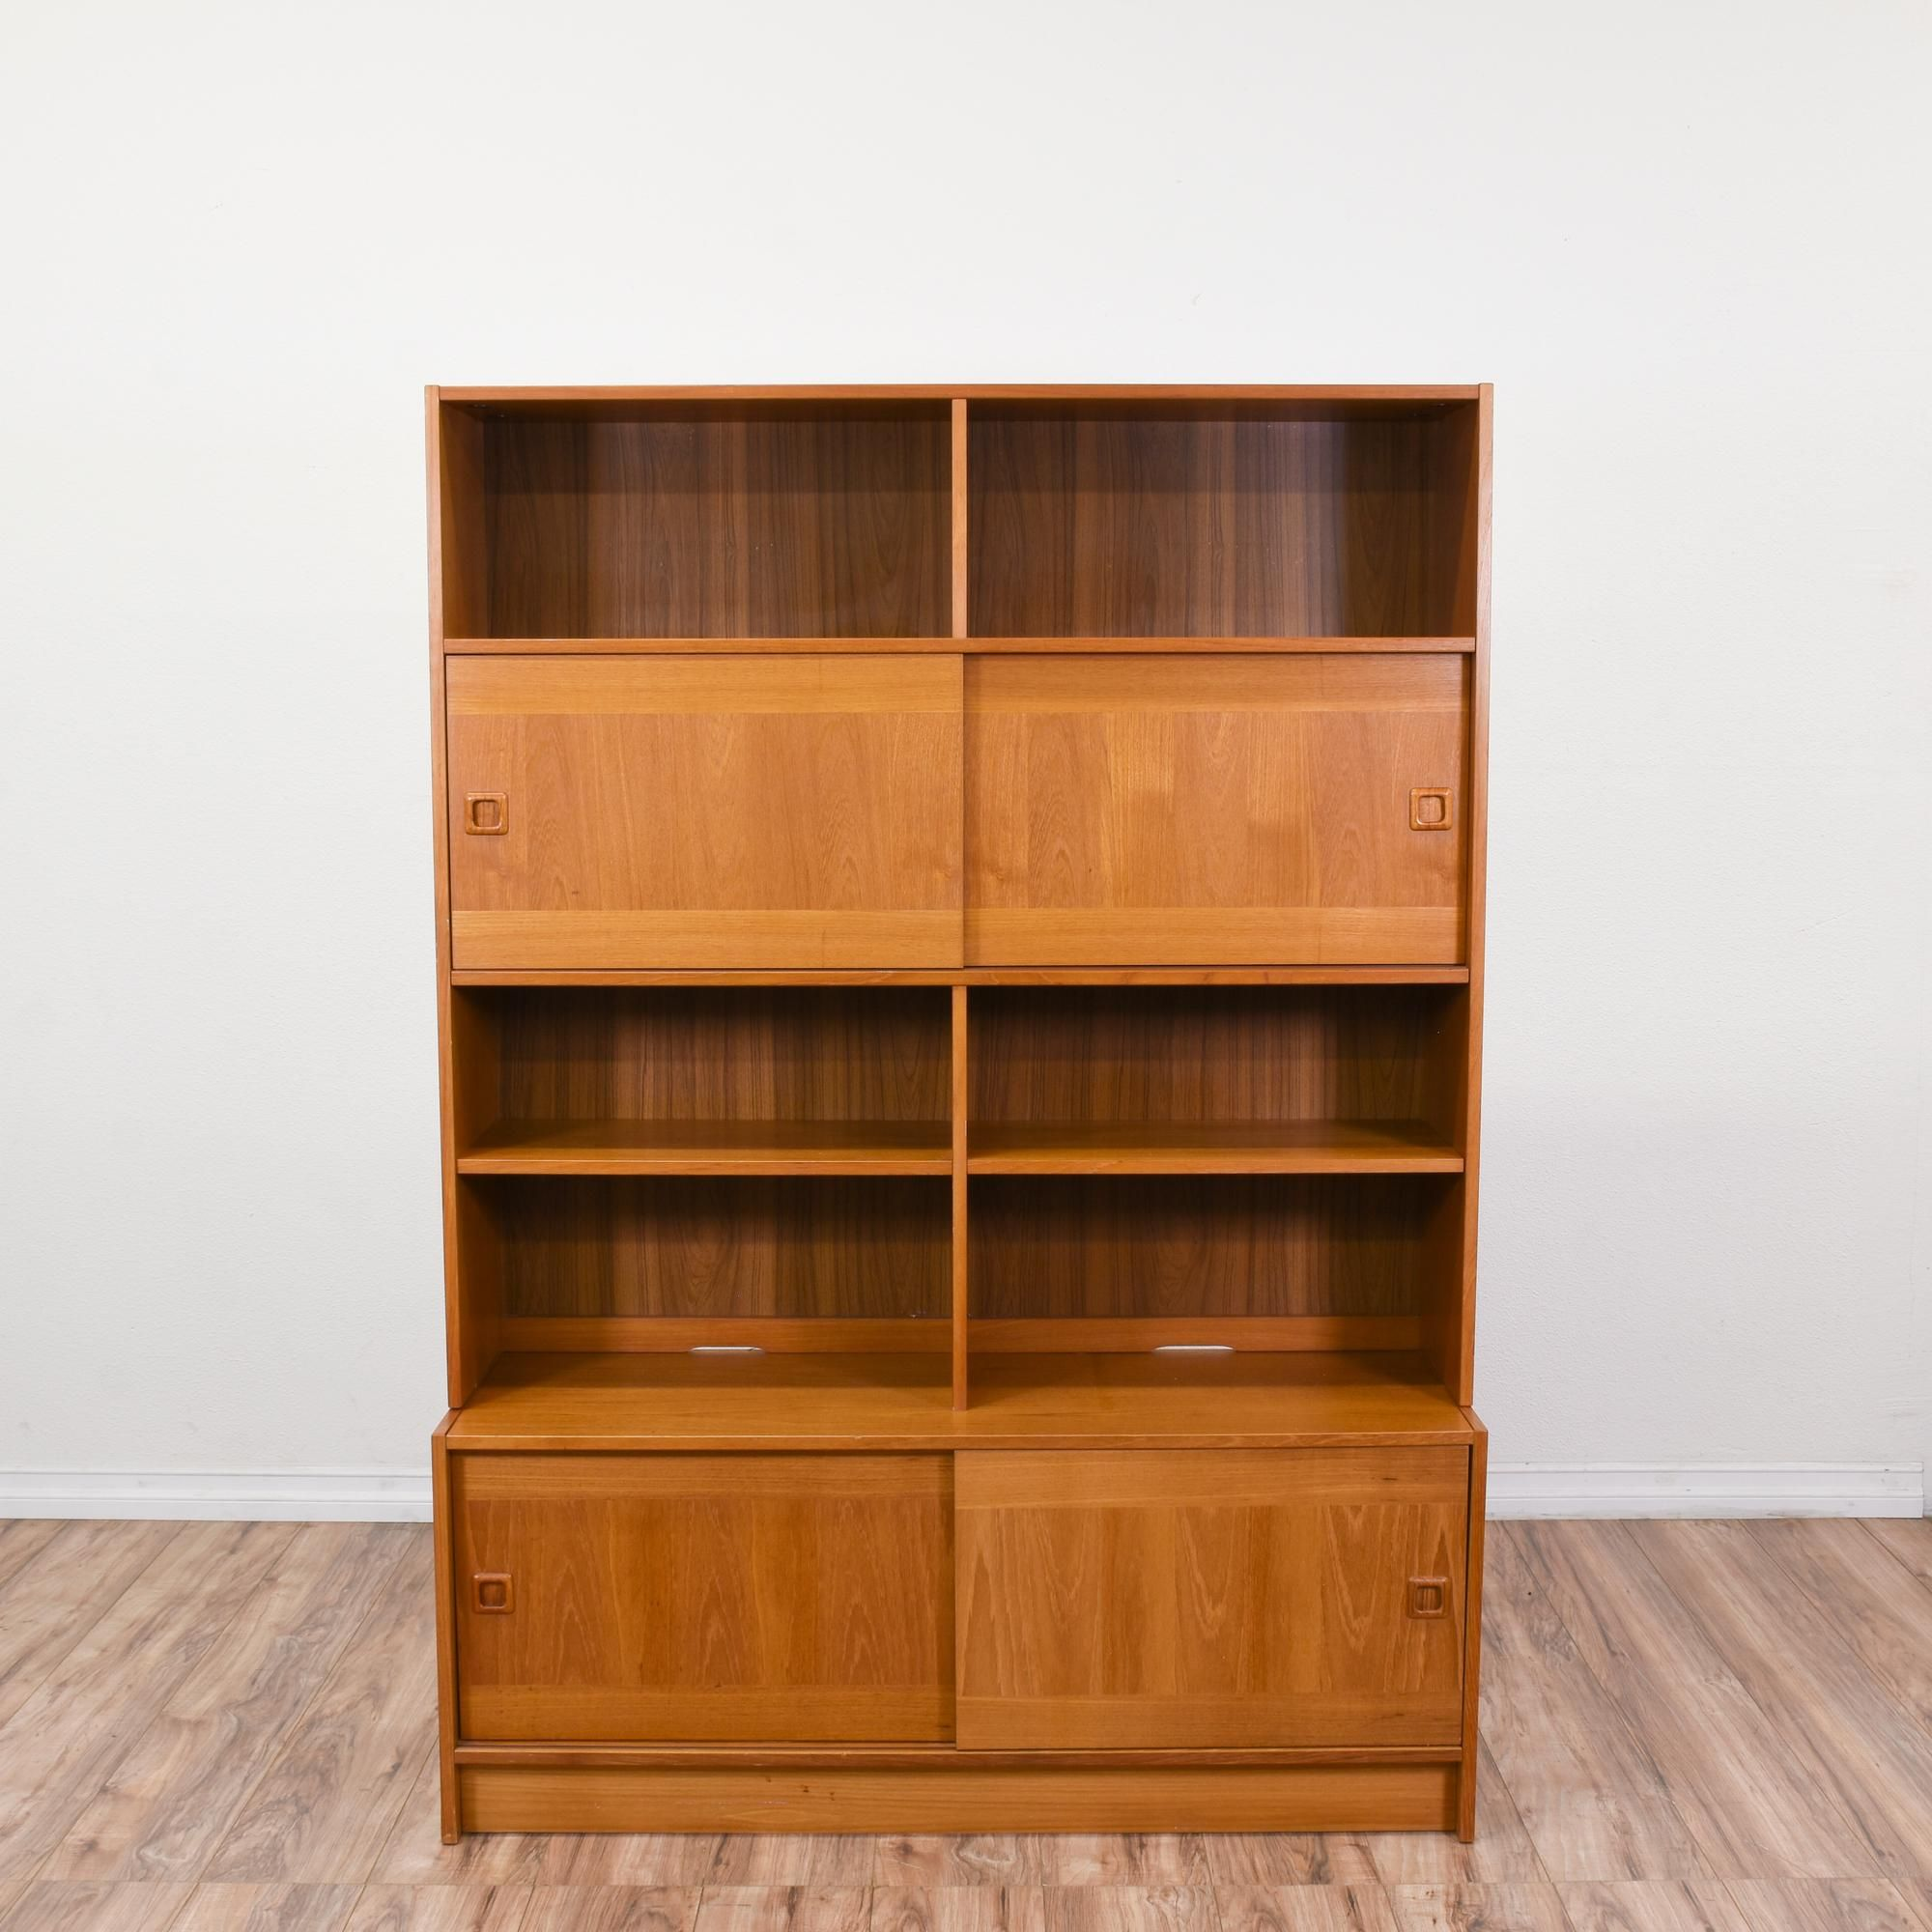 This Domino Mobler Wall Unit Made In Denmark Is Featured In A